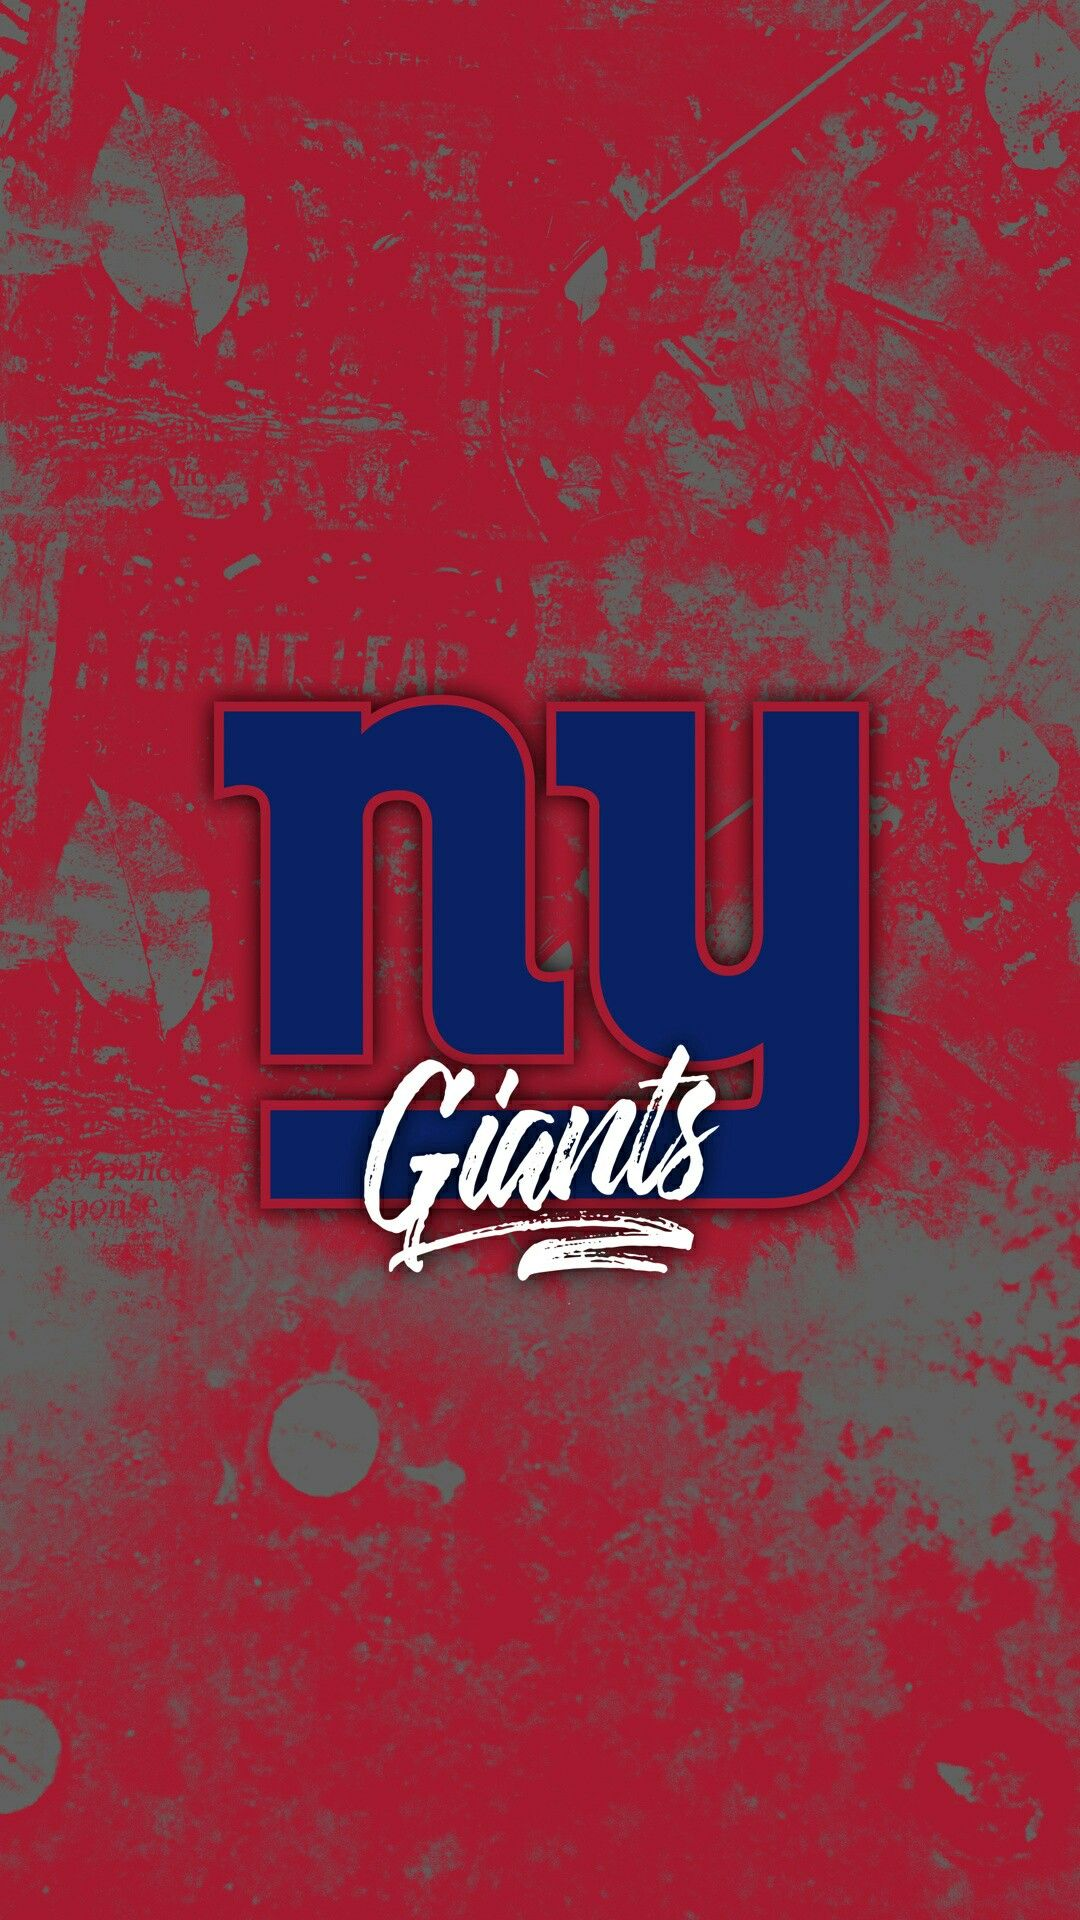 New York Giants Wallpaper New York Giants Logo New York Giants